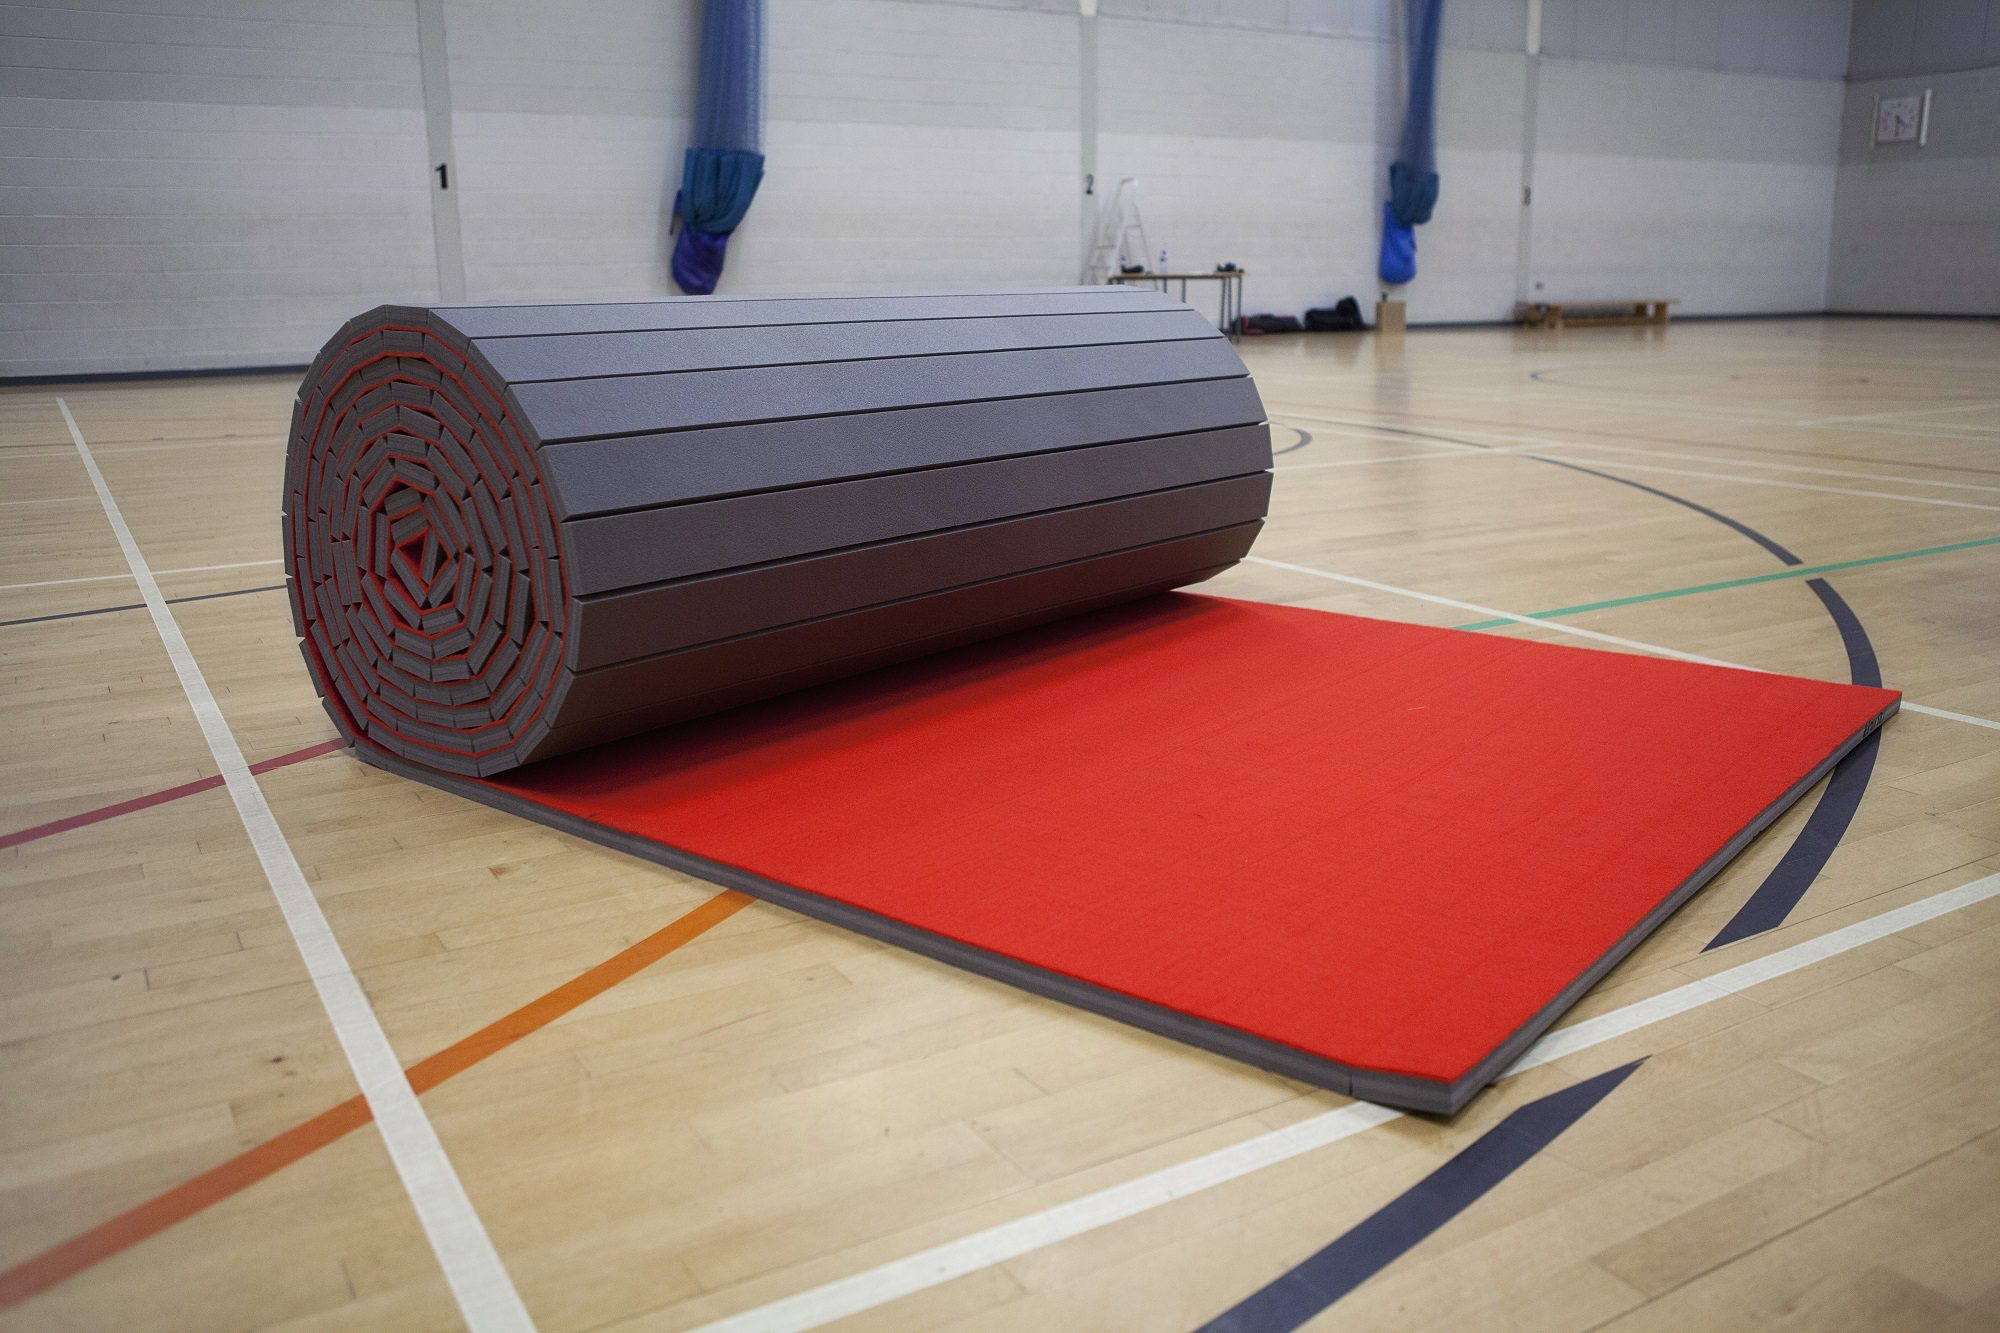 Carpet Roll Out Mats Gymnastics Mats Foams4sports